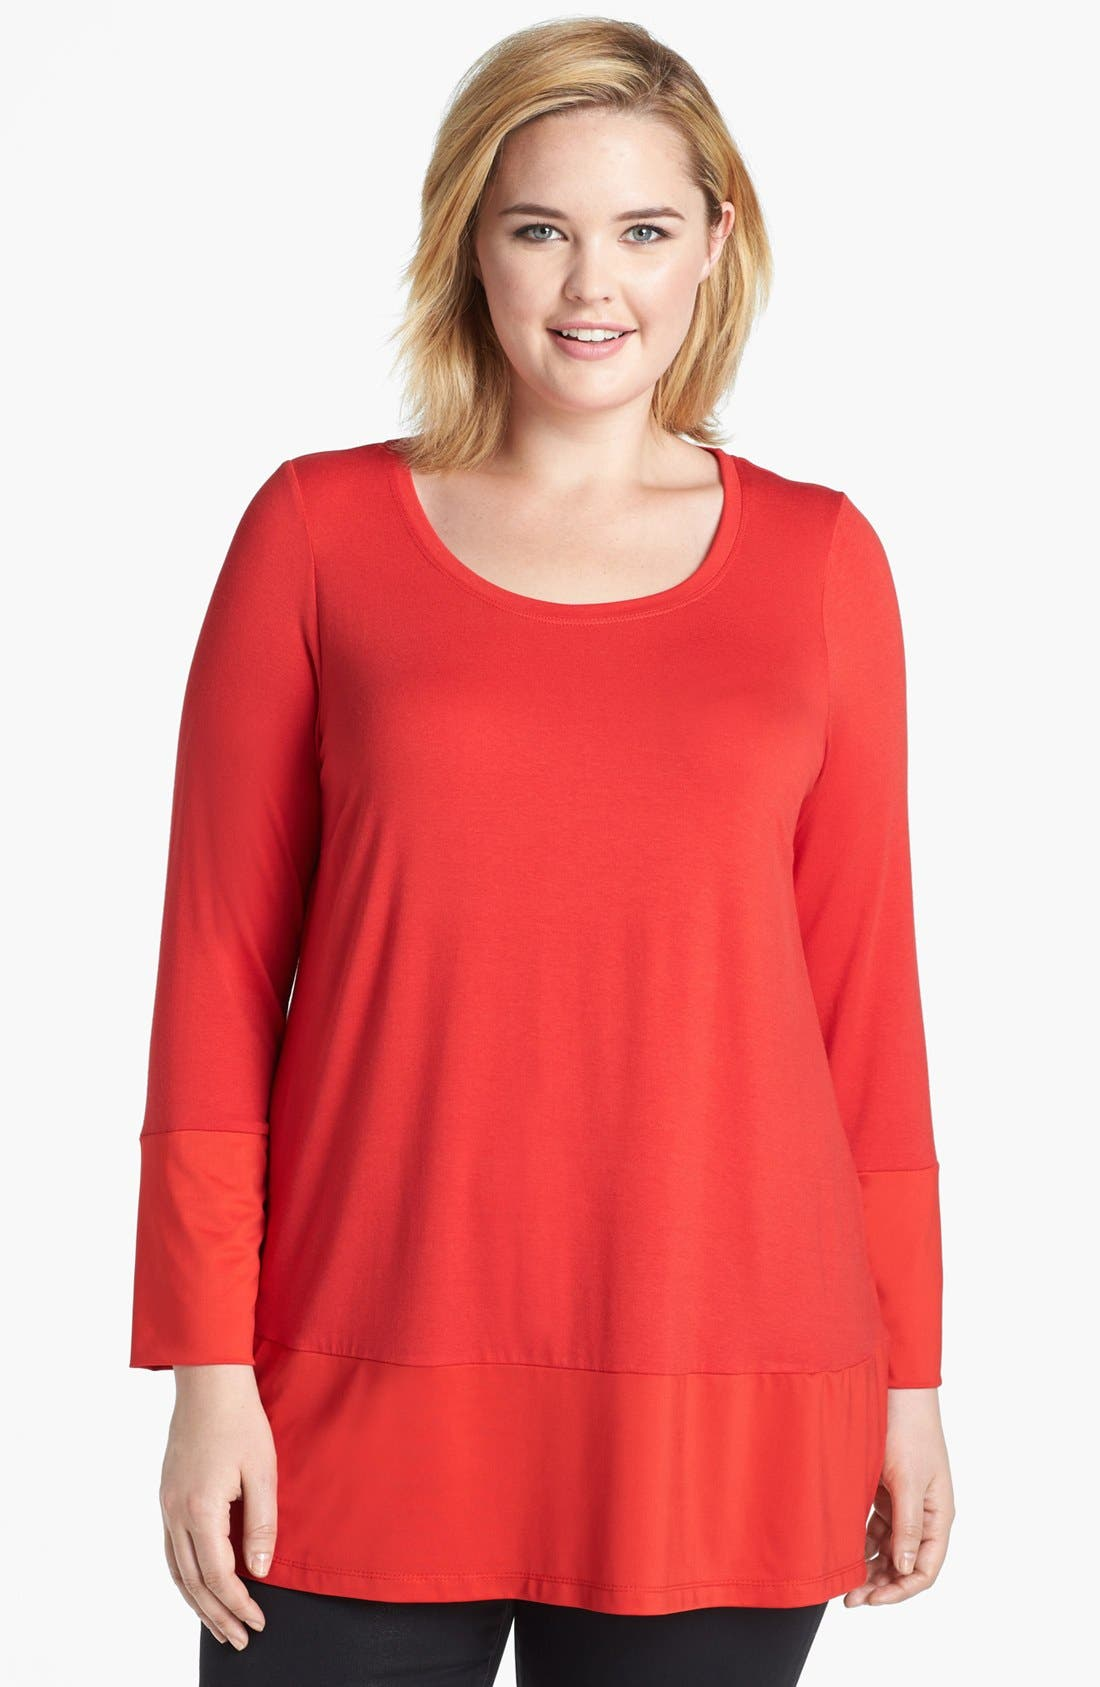 Alternate Image 1 Selected - Evans Mixed Media Top (Plus Size)